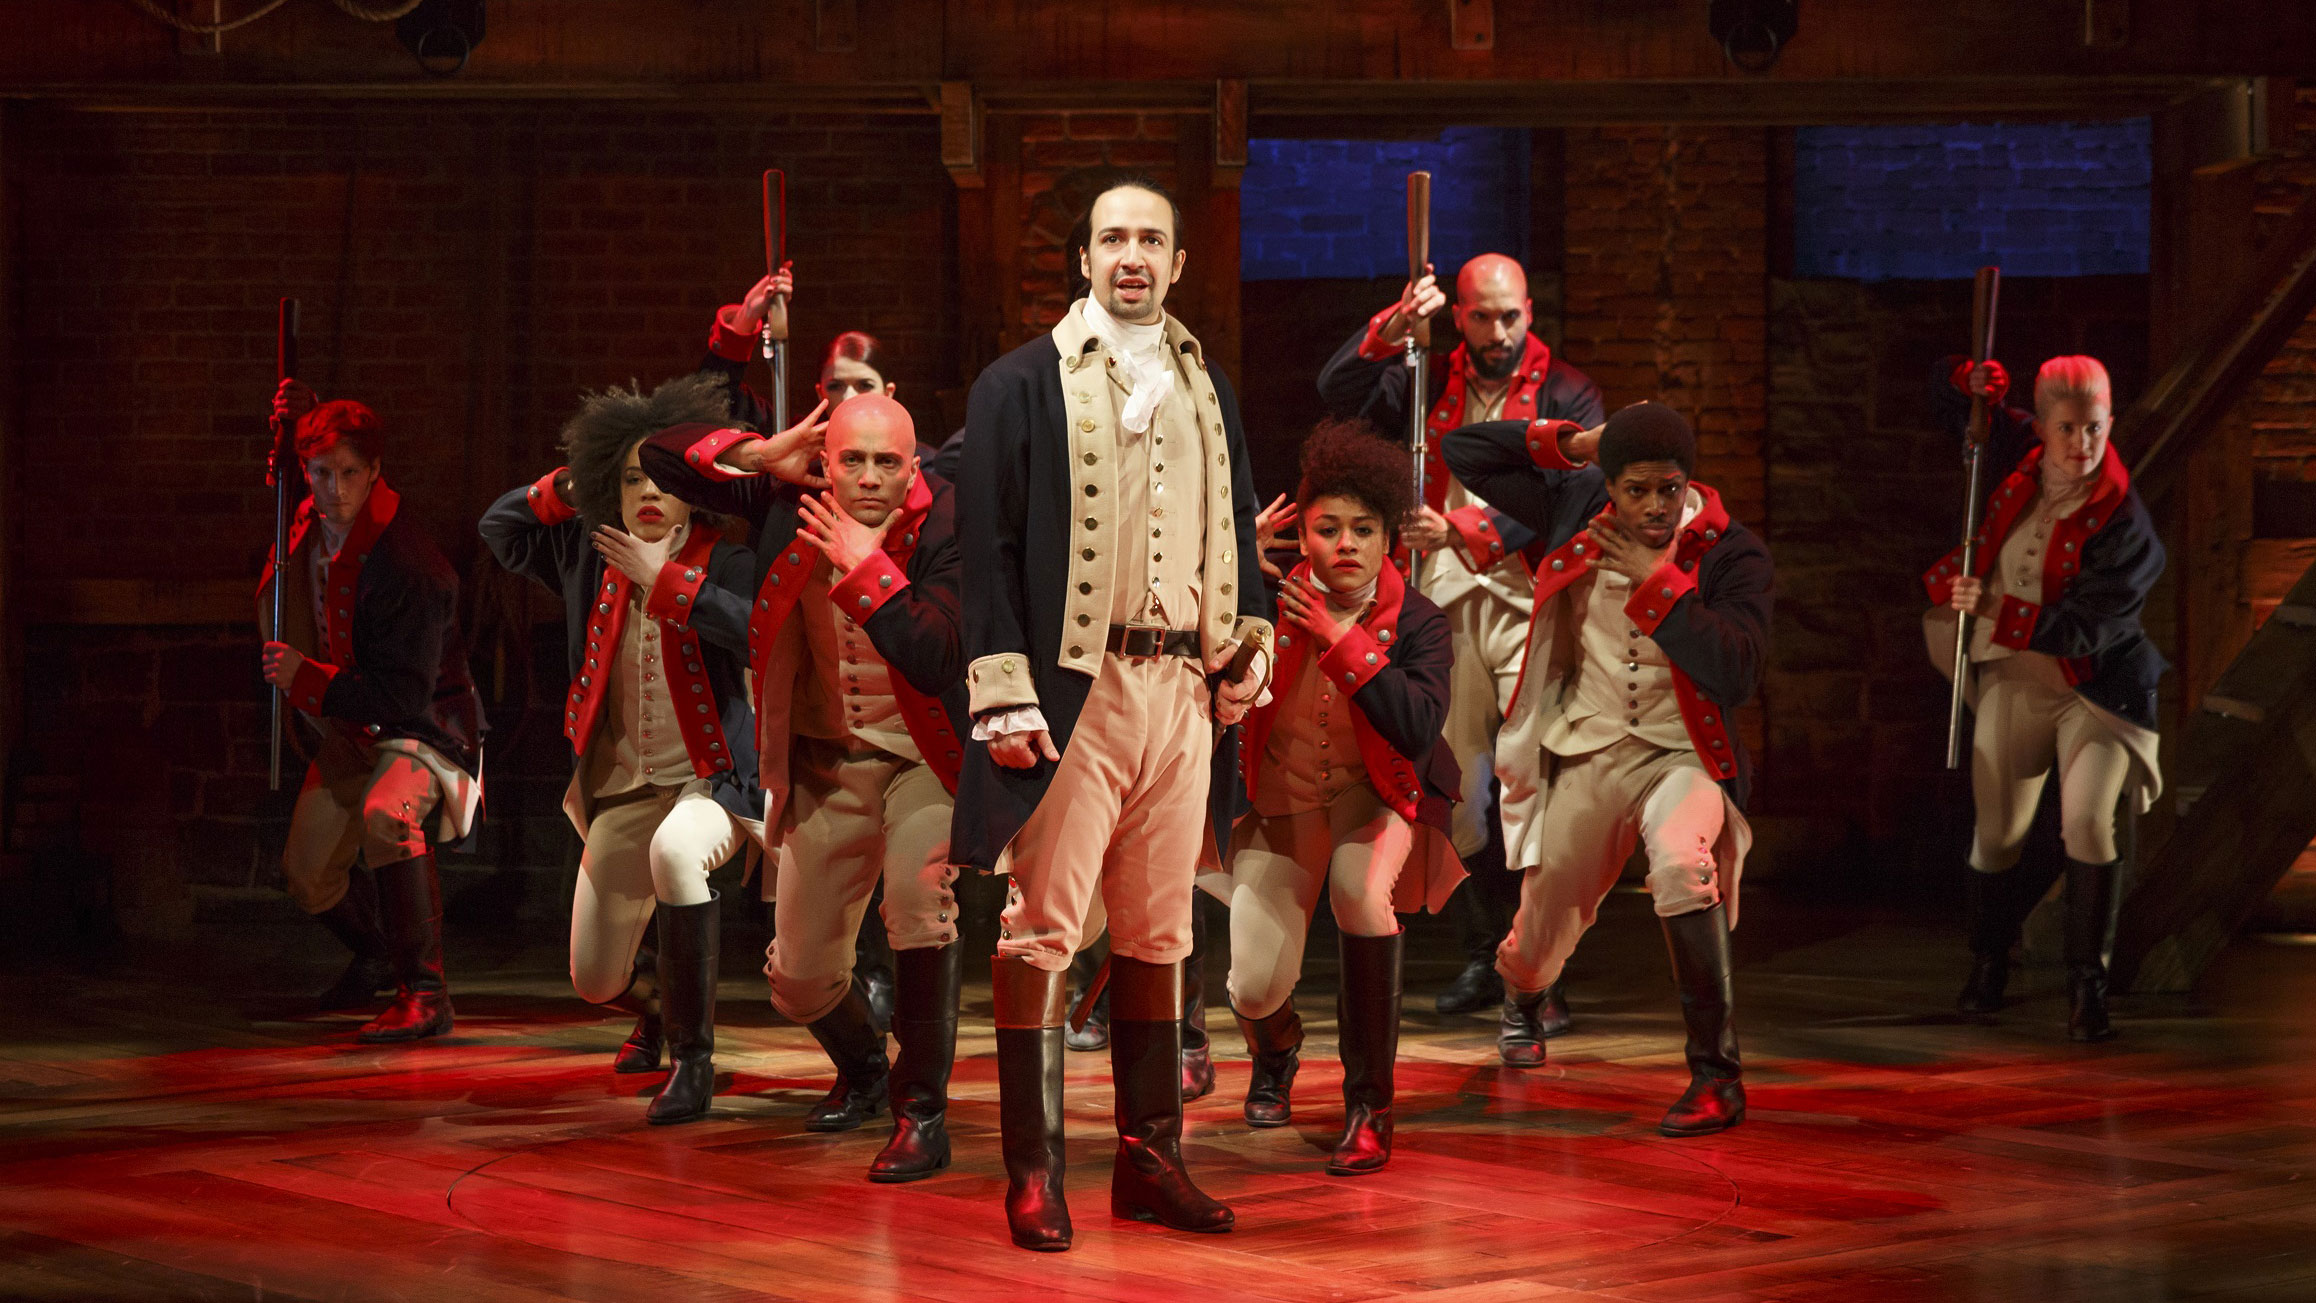 Disney Plus needs more musicals, and Hamilton could be just the beginning